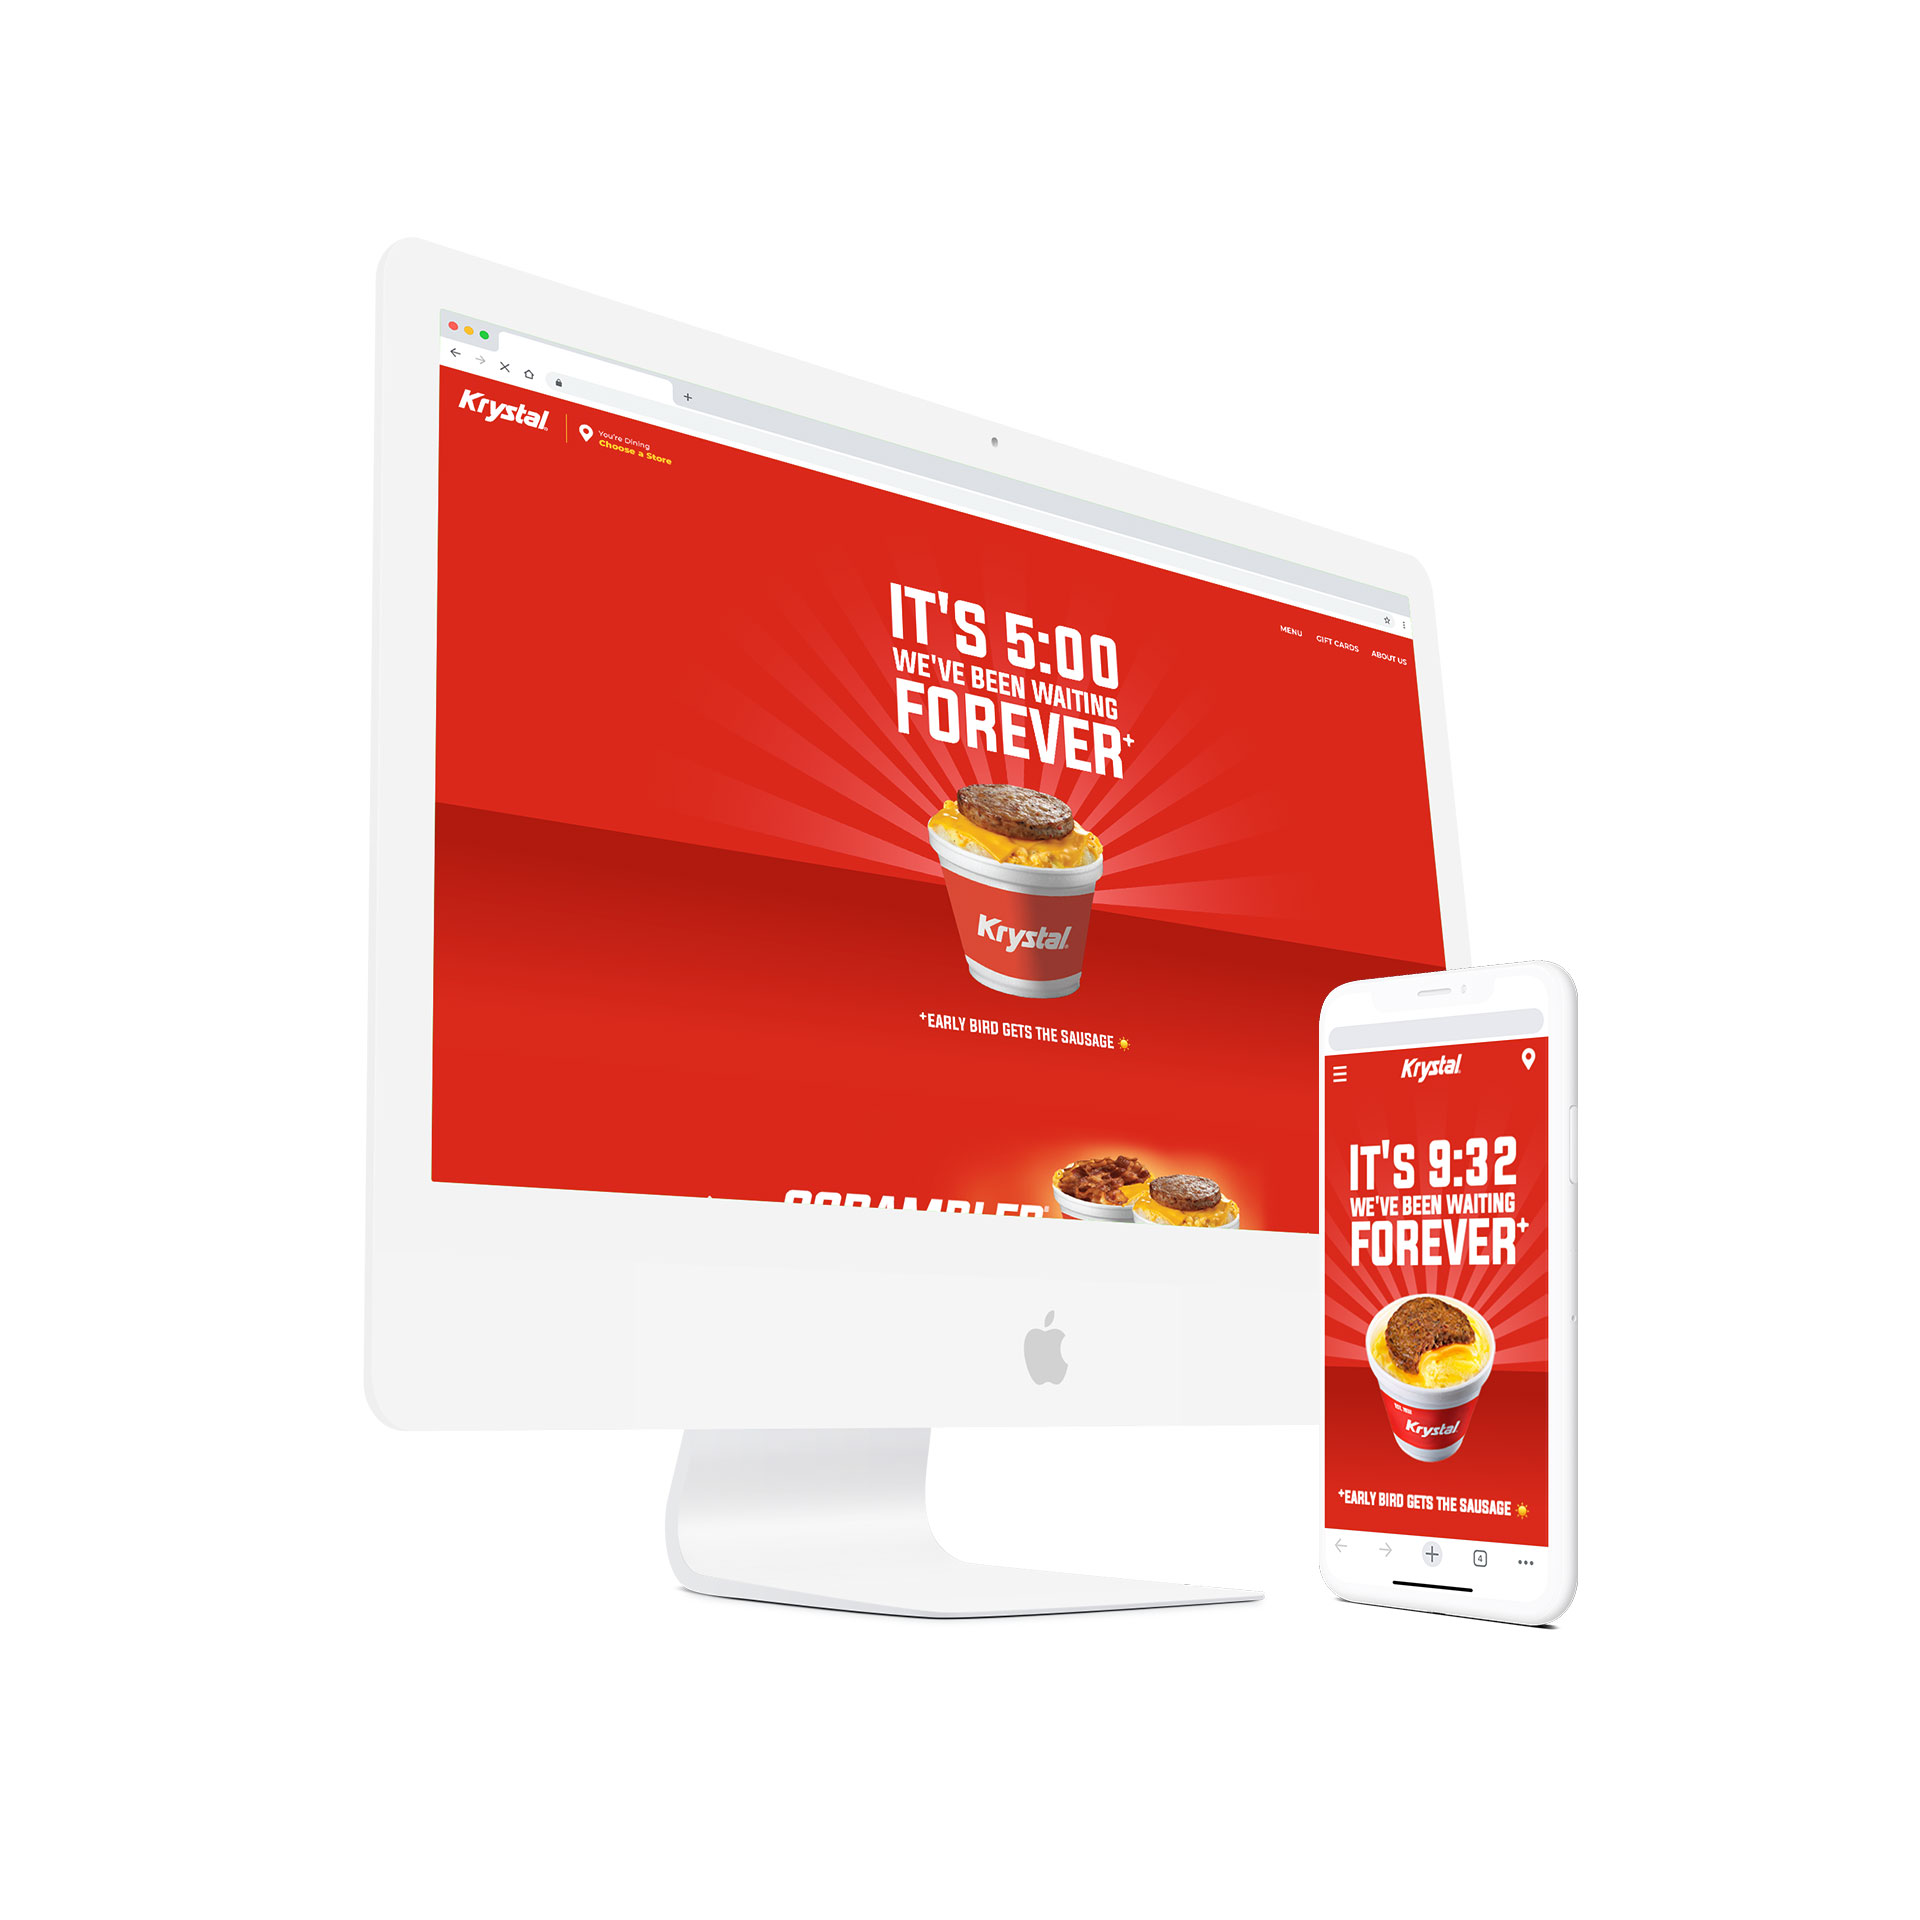 Desktop and mobile devices featuring the Krystal website.